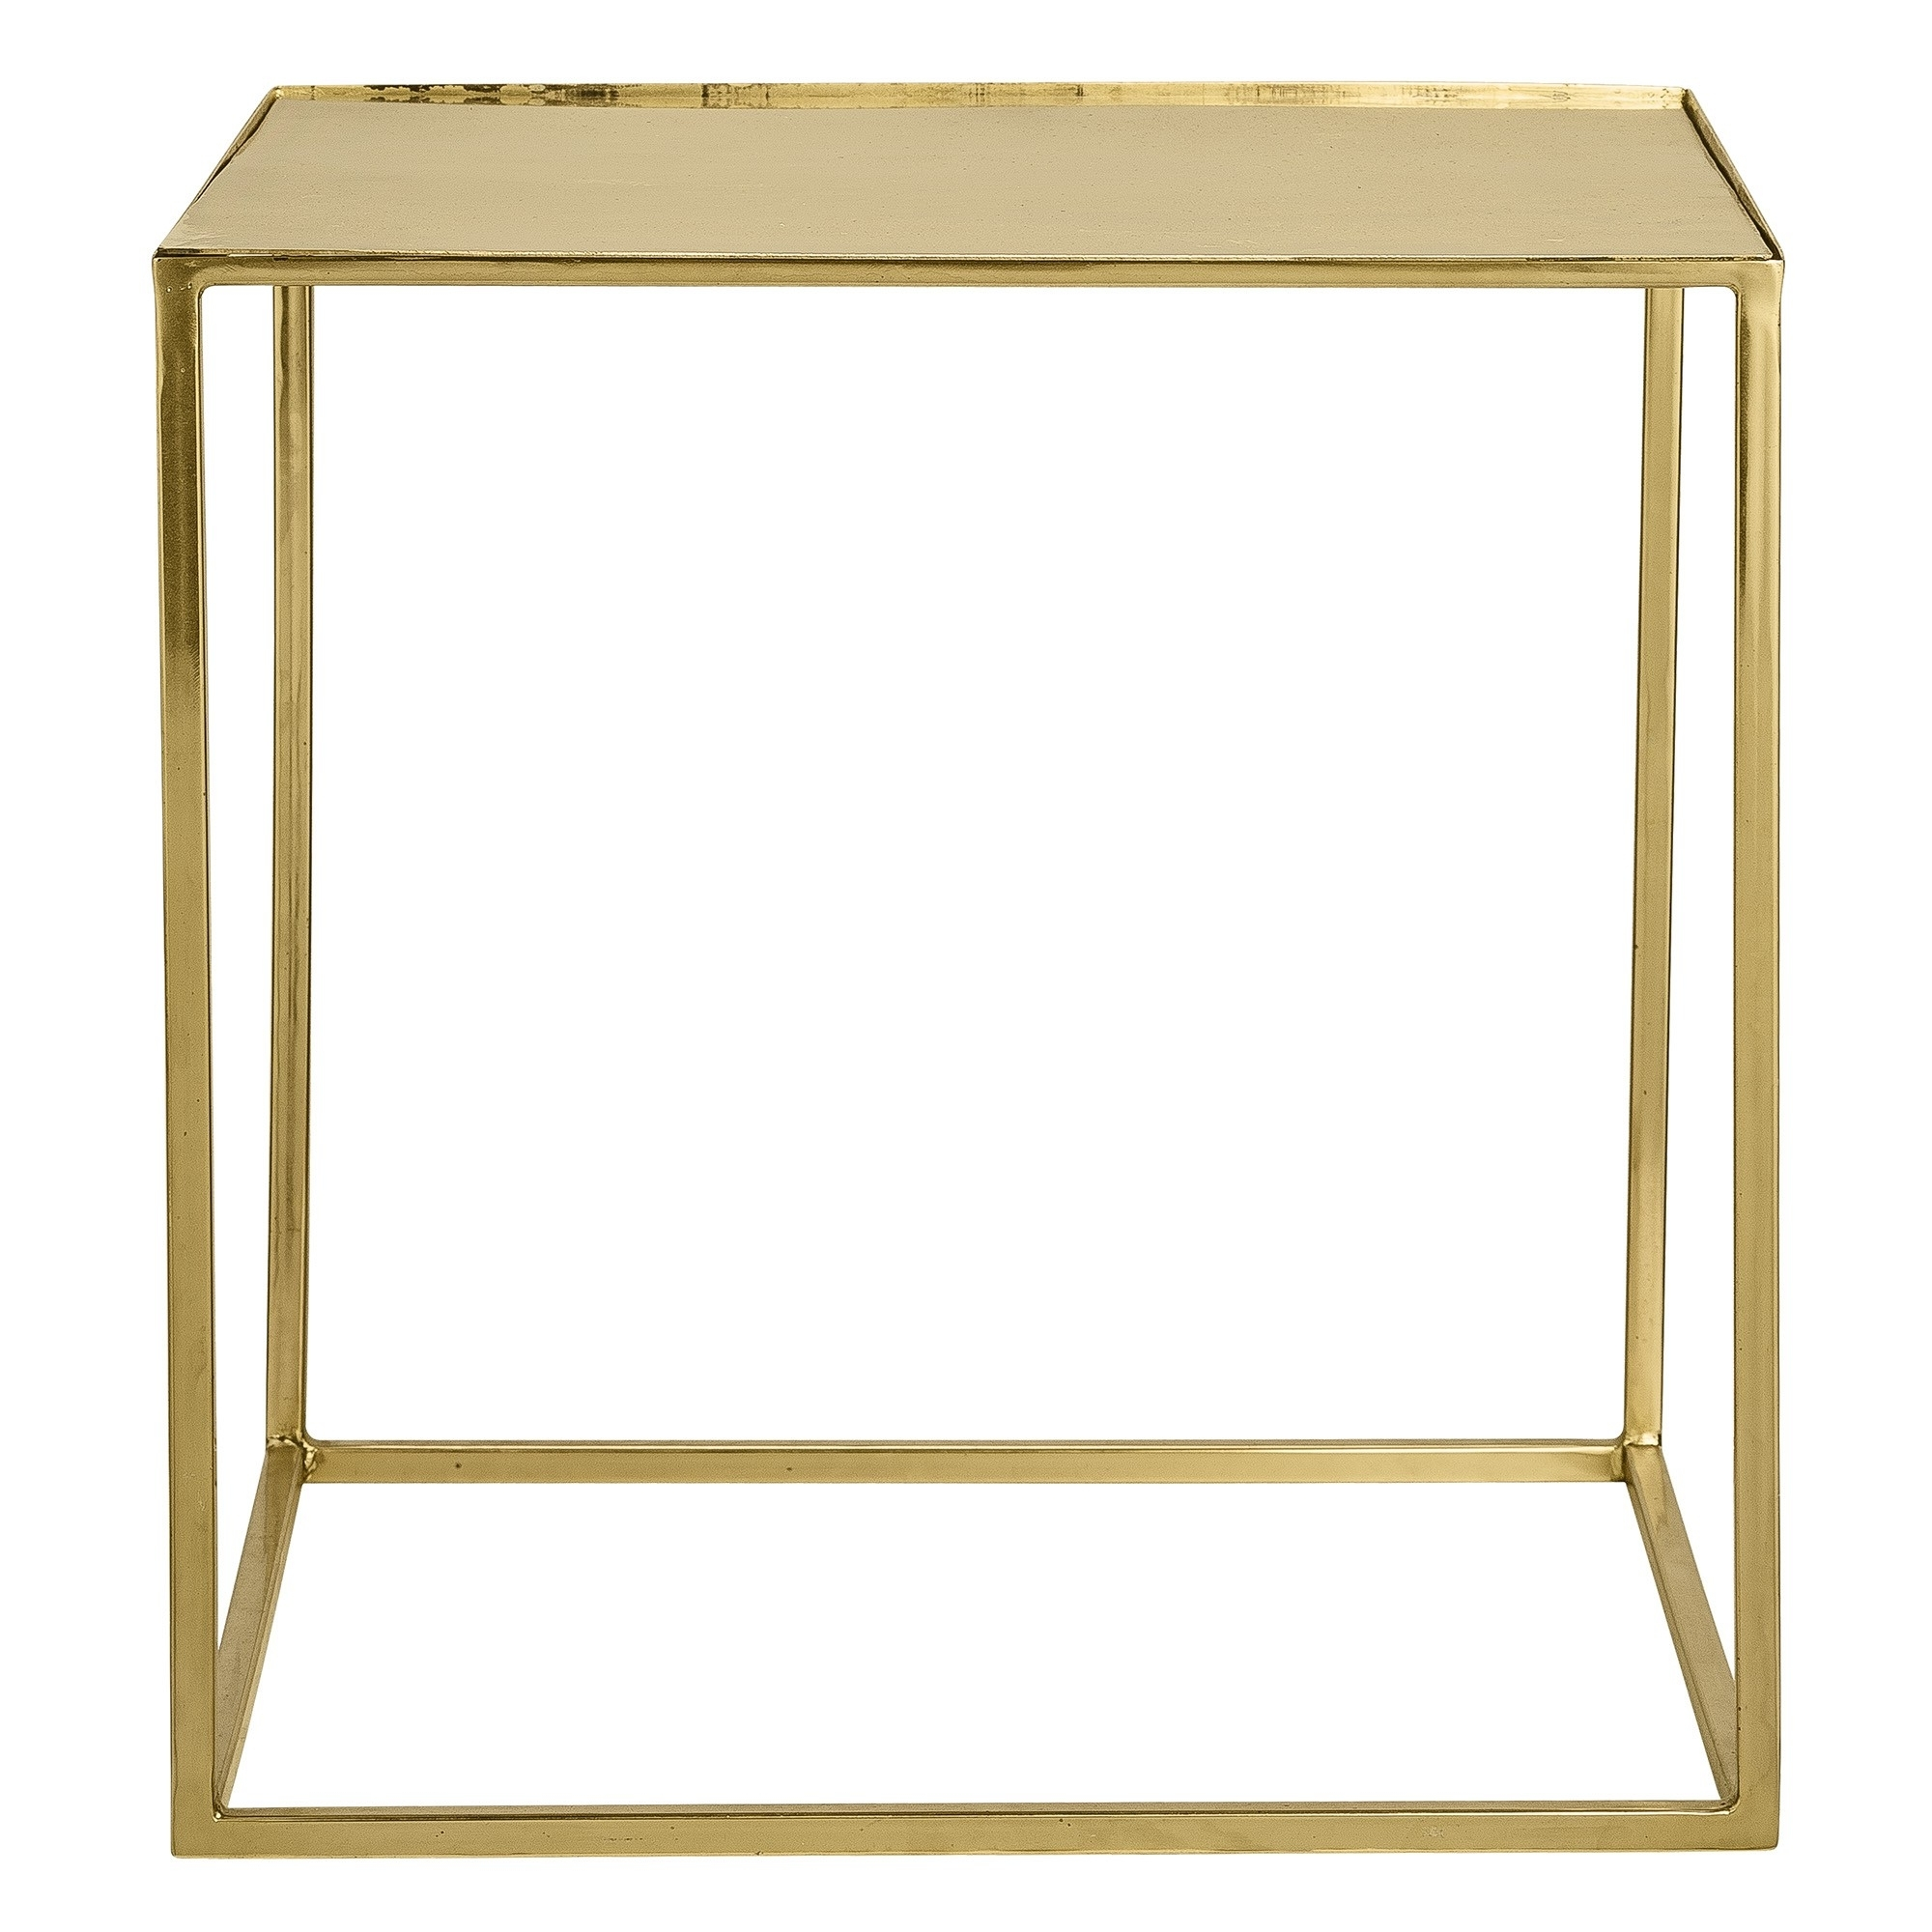 Most Popular Rectangular Brass Finish And Glass Coffee Tables Inside The Jane Side / Coffee Table – Gold Finish, Metal, Glass (View 3 of 20)